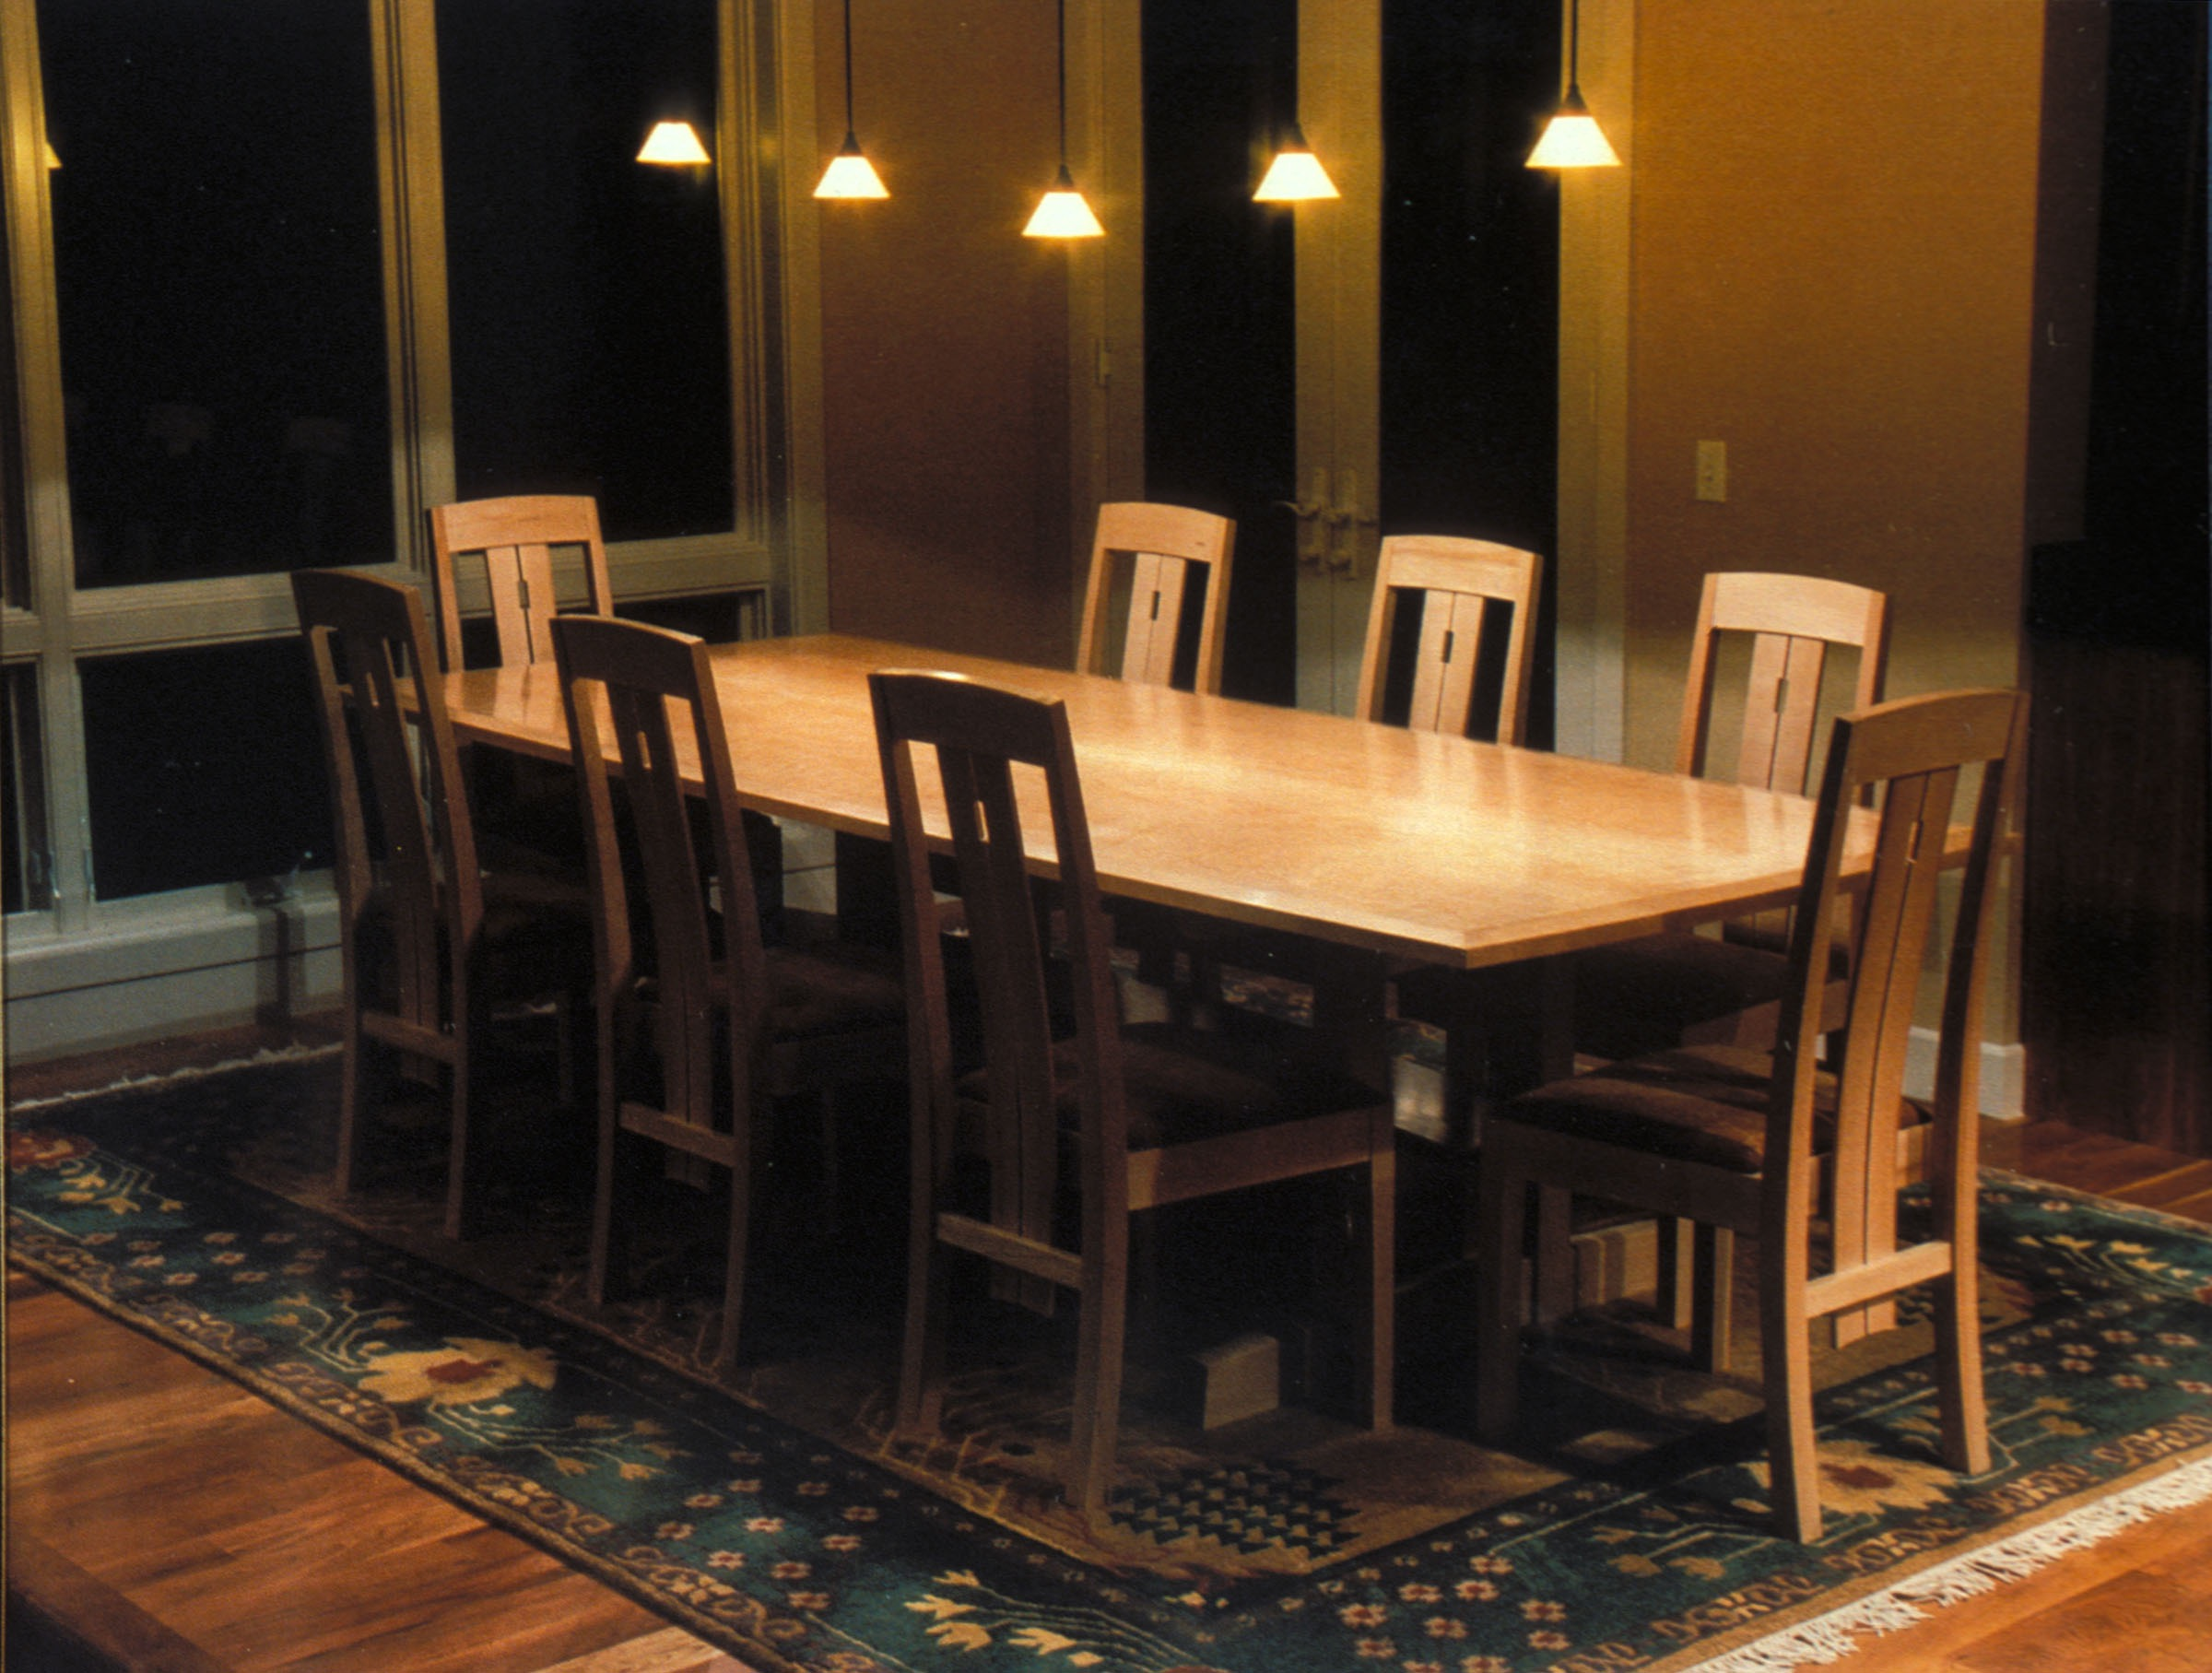 Fiddleback Maple Dining Table and Chairs — Craig Vandall Stevens